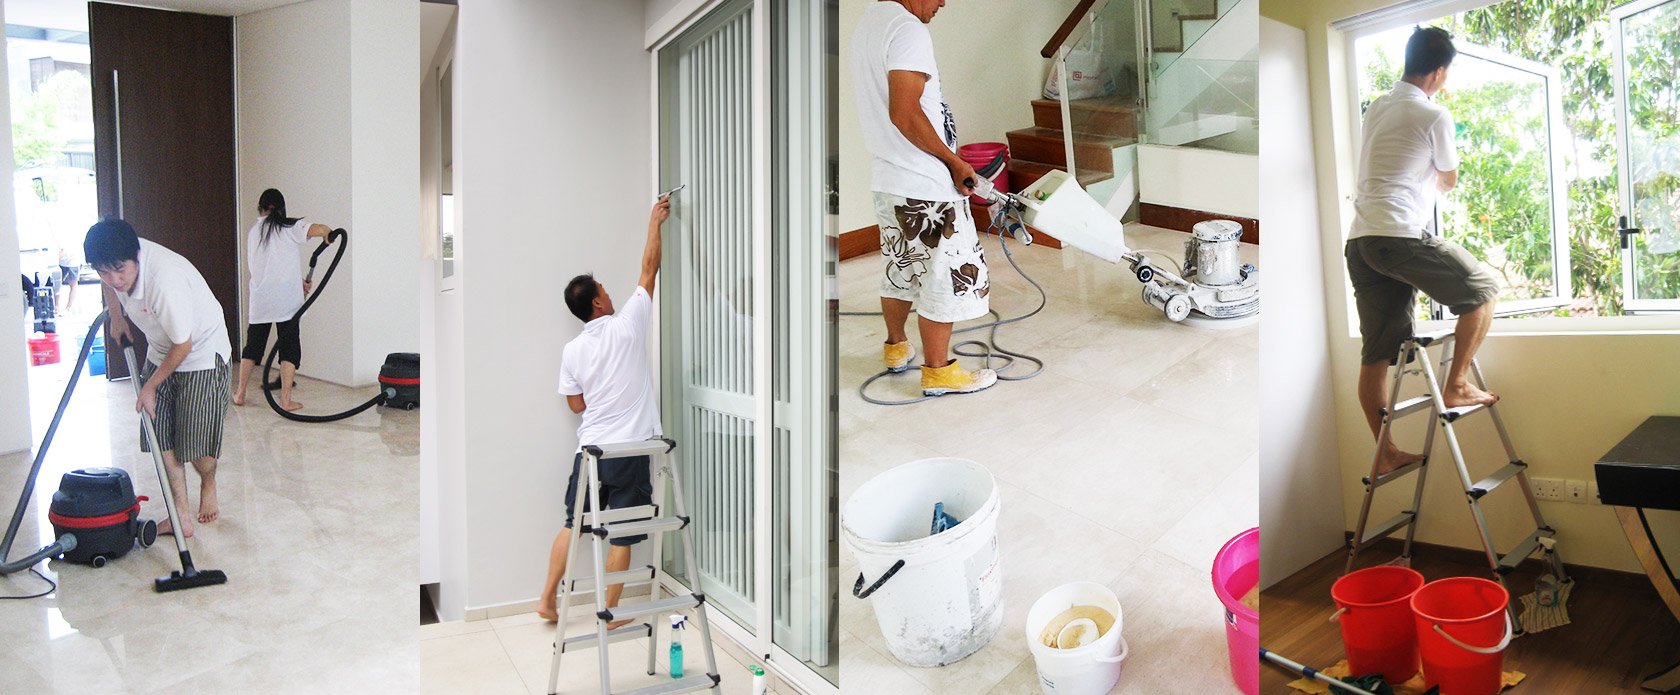 Home Carely Cleaning Services One Stop Service For All